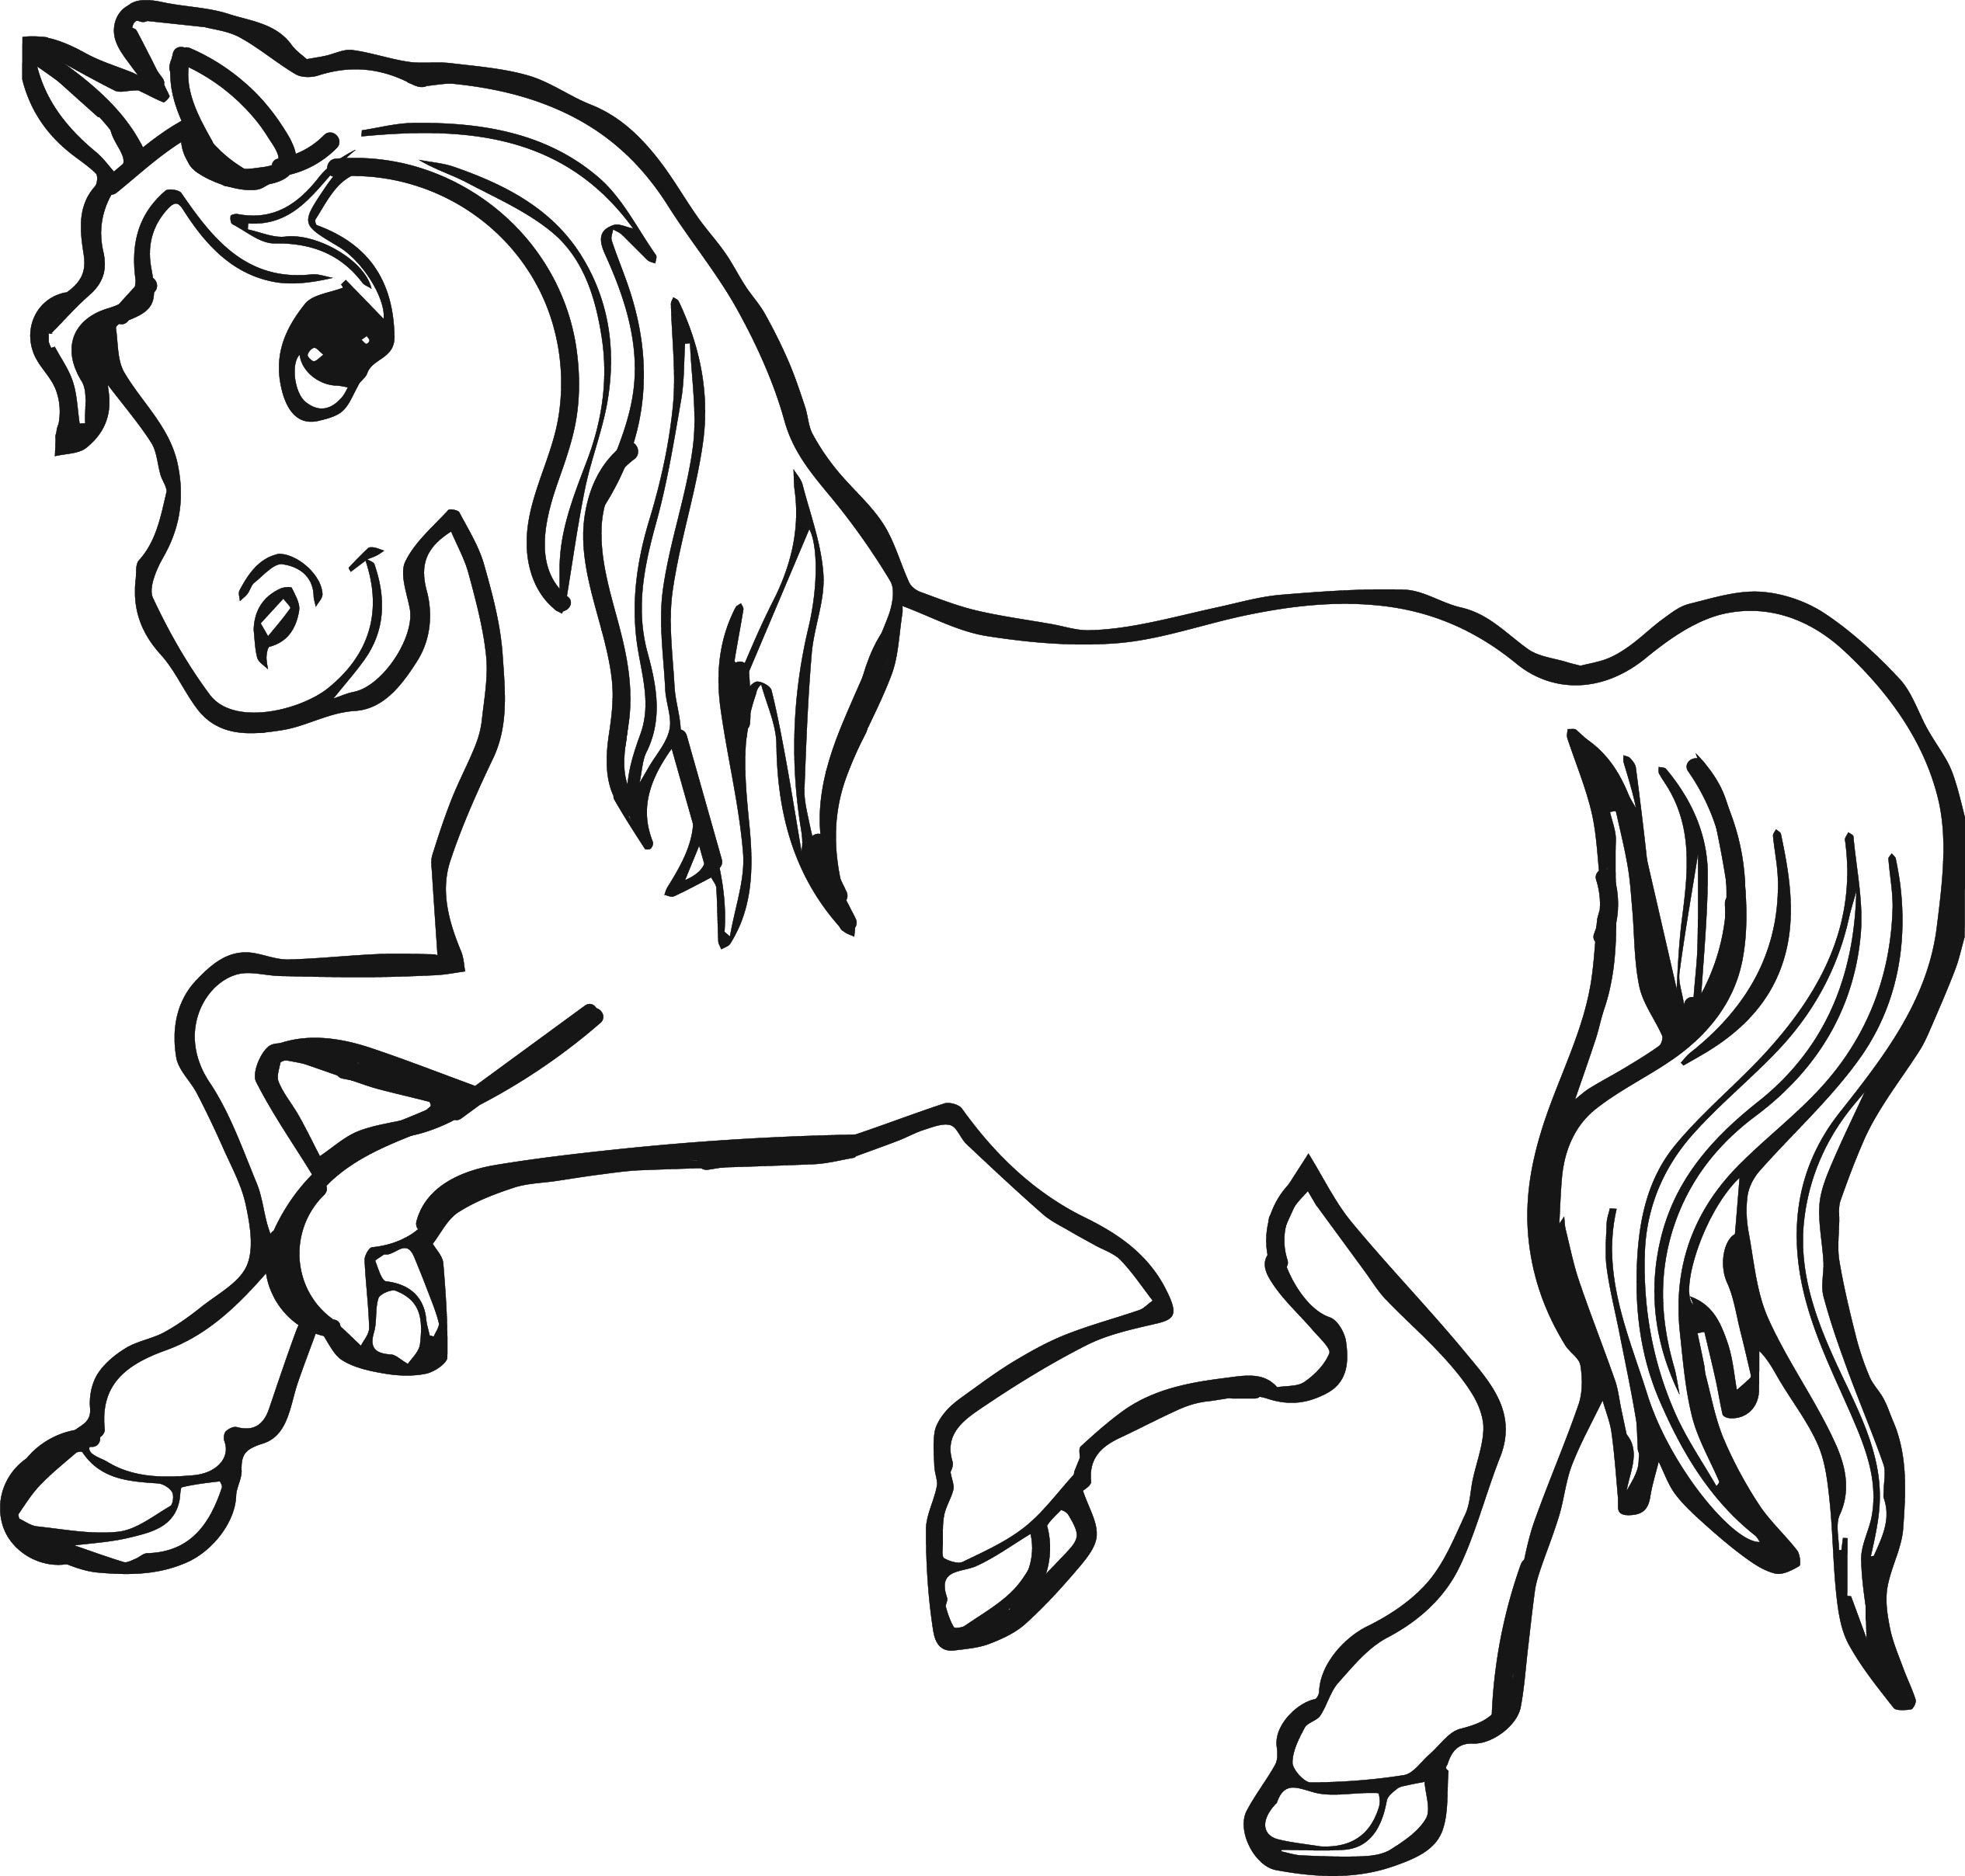 Cool Horse Coloring Pages Printable Horse Coloring Pages Horse Coloring Animal Coloring Pages